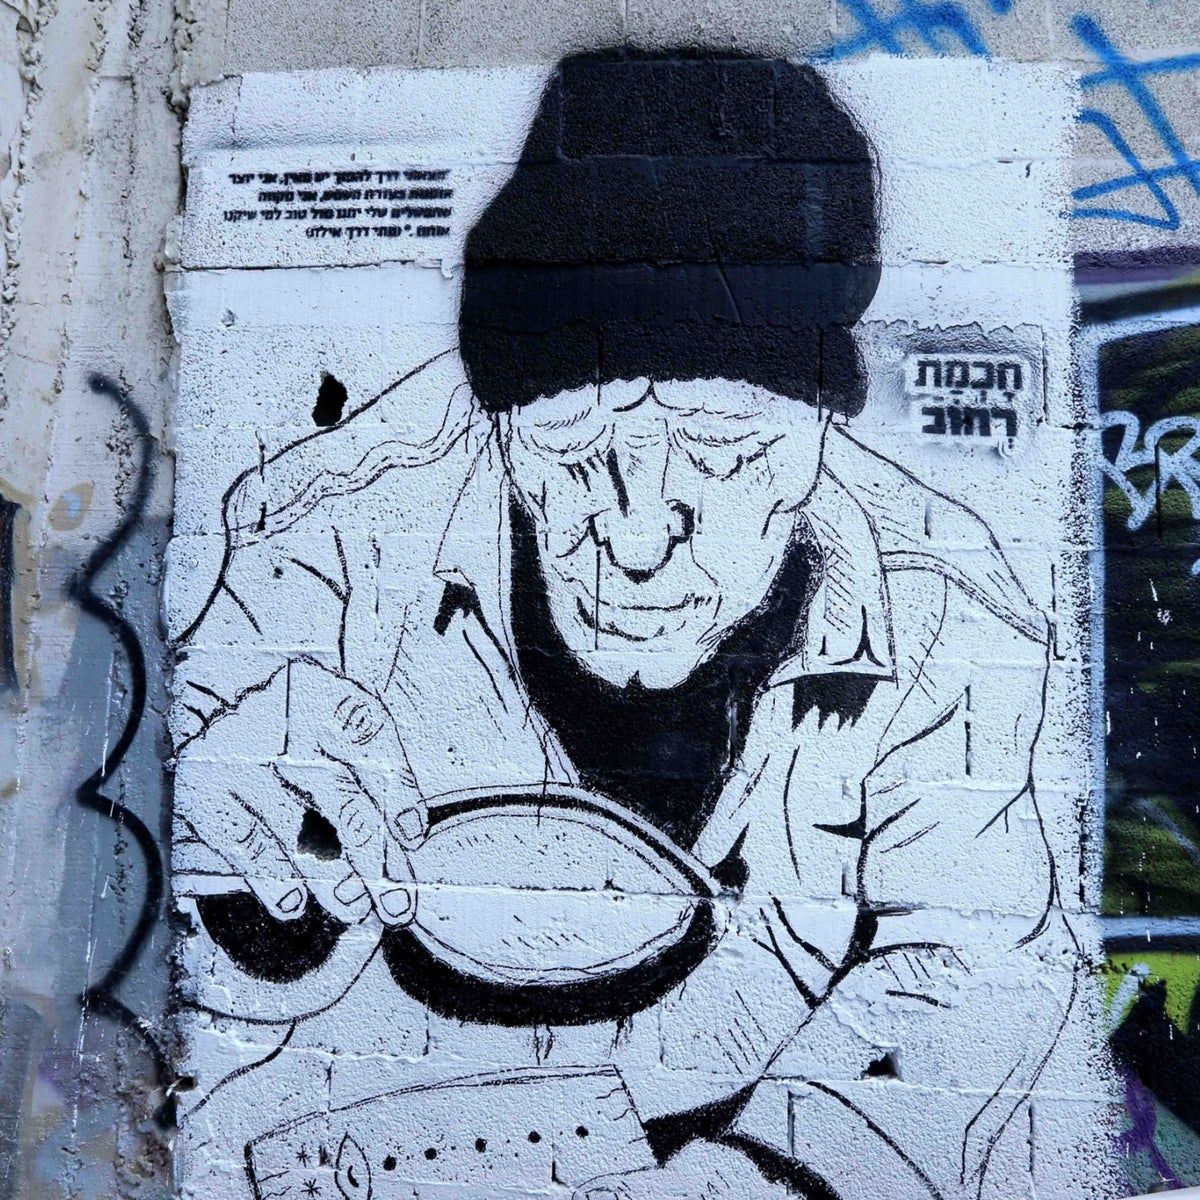 A mural dedicated to Matti, 60-year-old homeless.